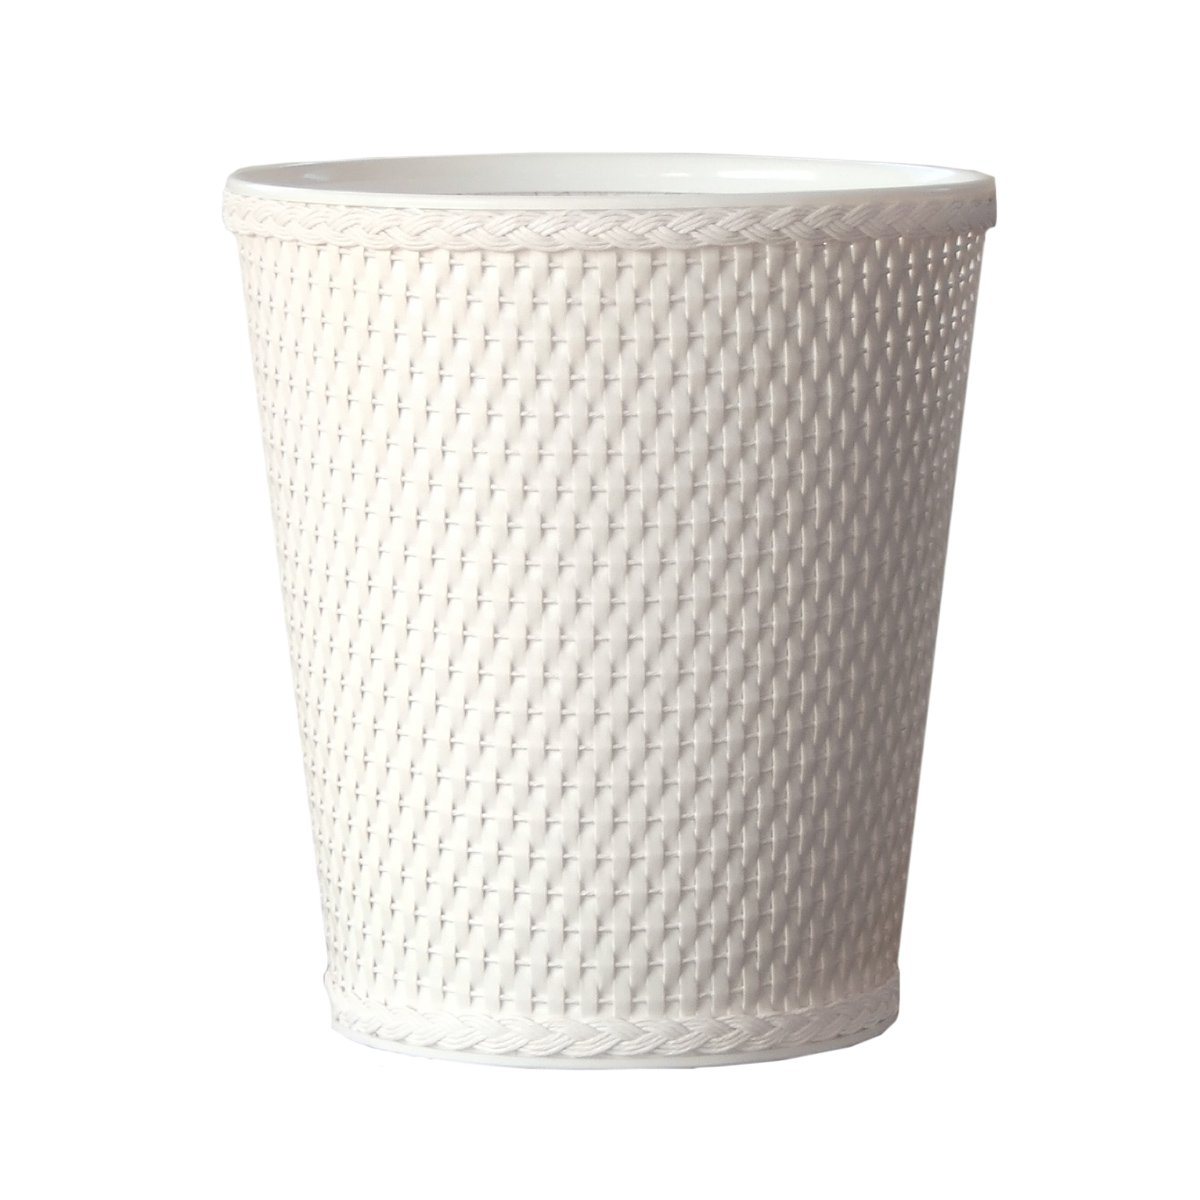 Lamont Home Carter Round Wicker Waste Basket, White by Lamont Home